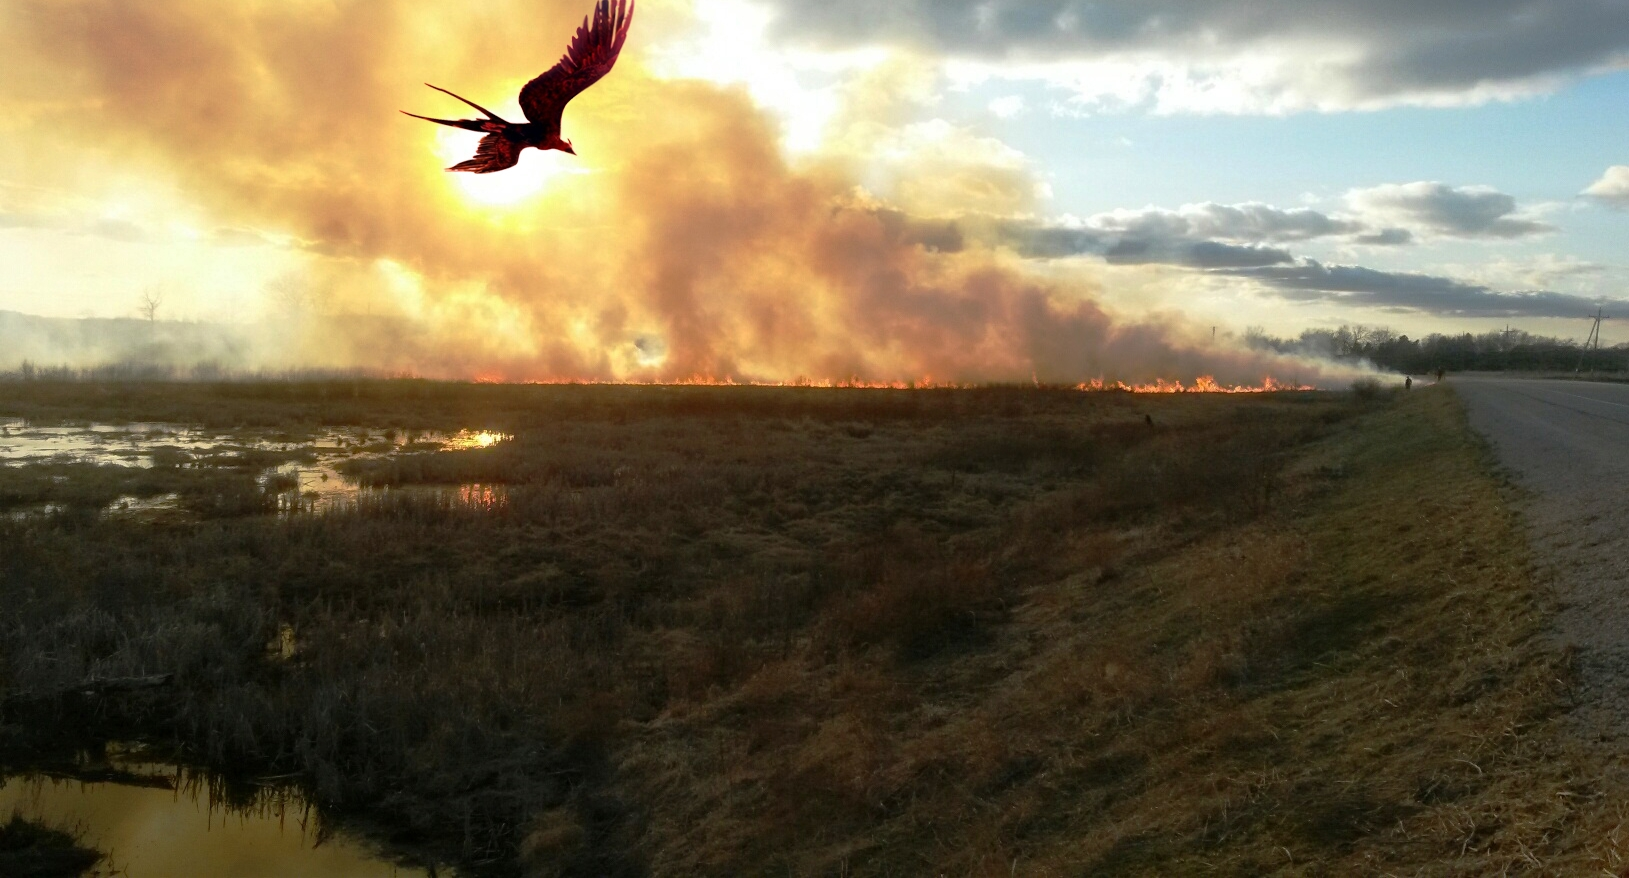 A phoenix flies on graceful wings over Buddy's Prairie at Faville Grove Sanctuary (photography credit: Drew Harry and Mikhail Fernandes)